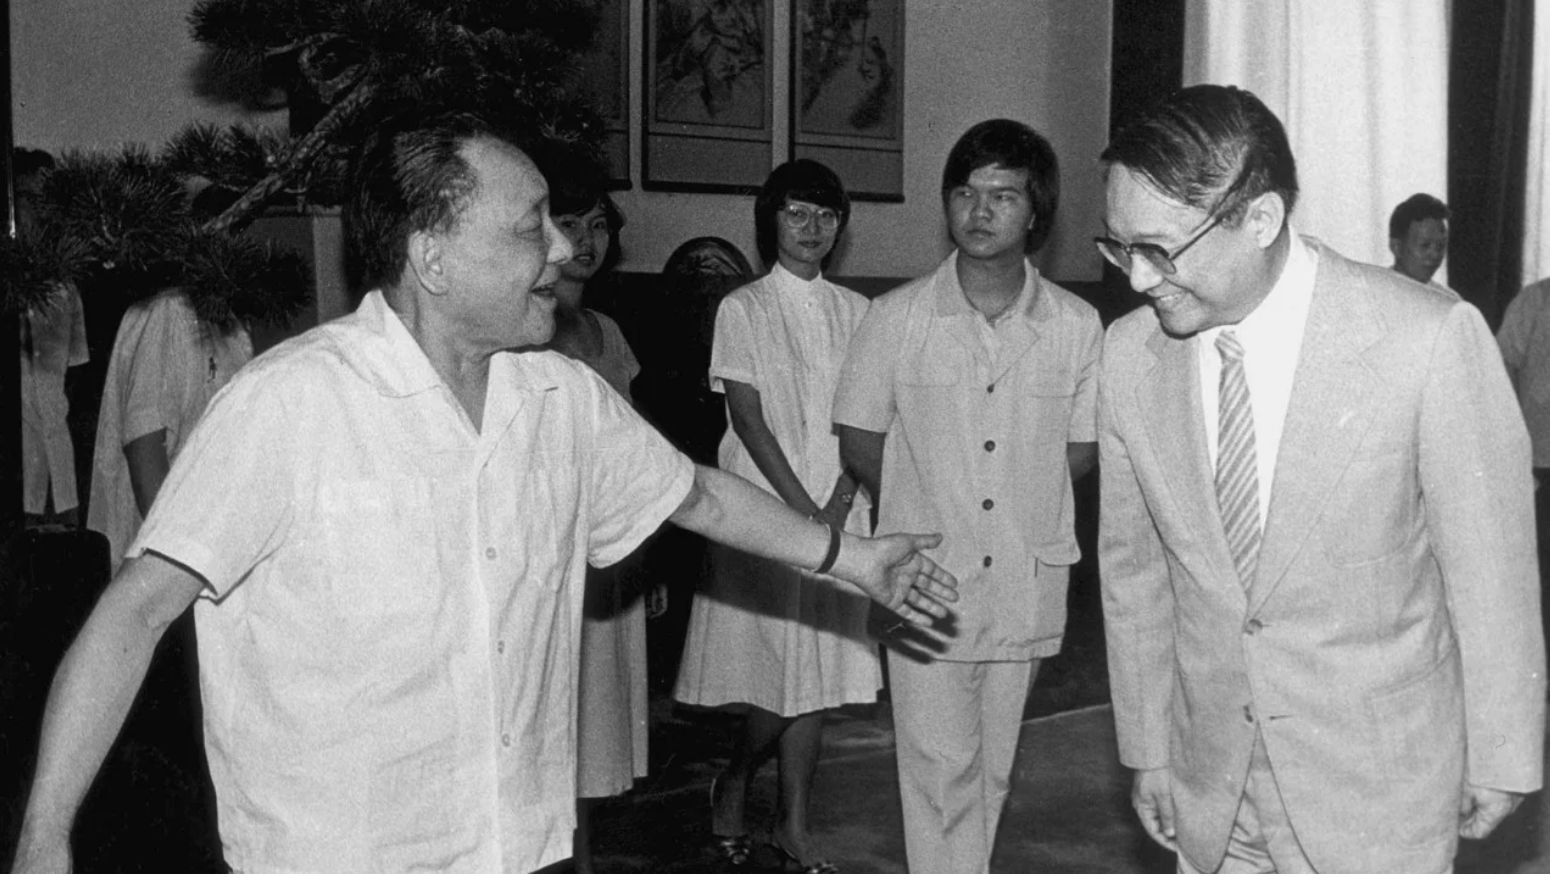 In 1981, Deng Xiaoping, met with Louis and personally apologized for the killing of Jin Yong's father. (Image: scmp / CC0 1.0)